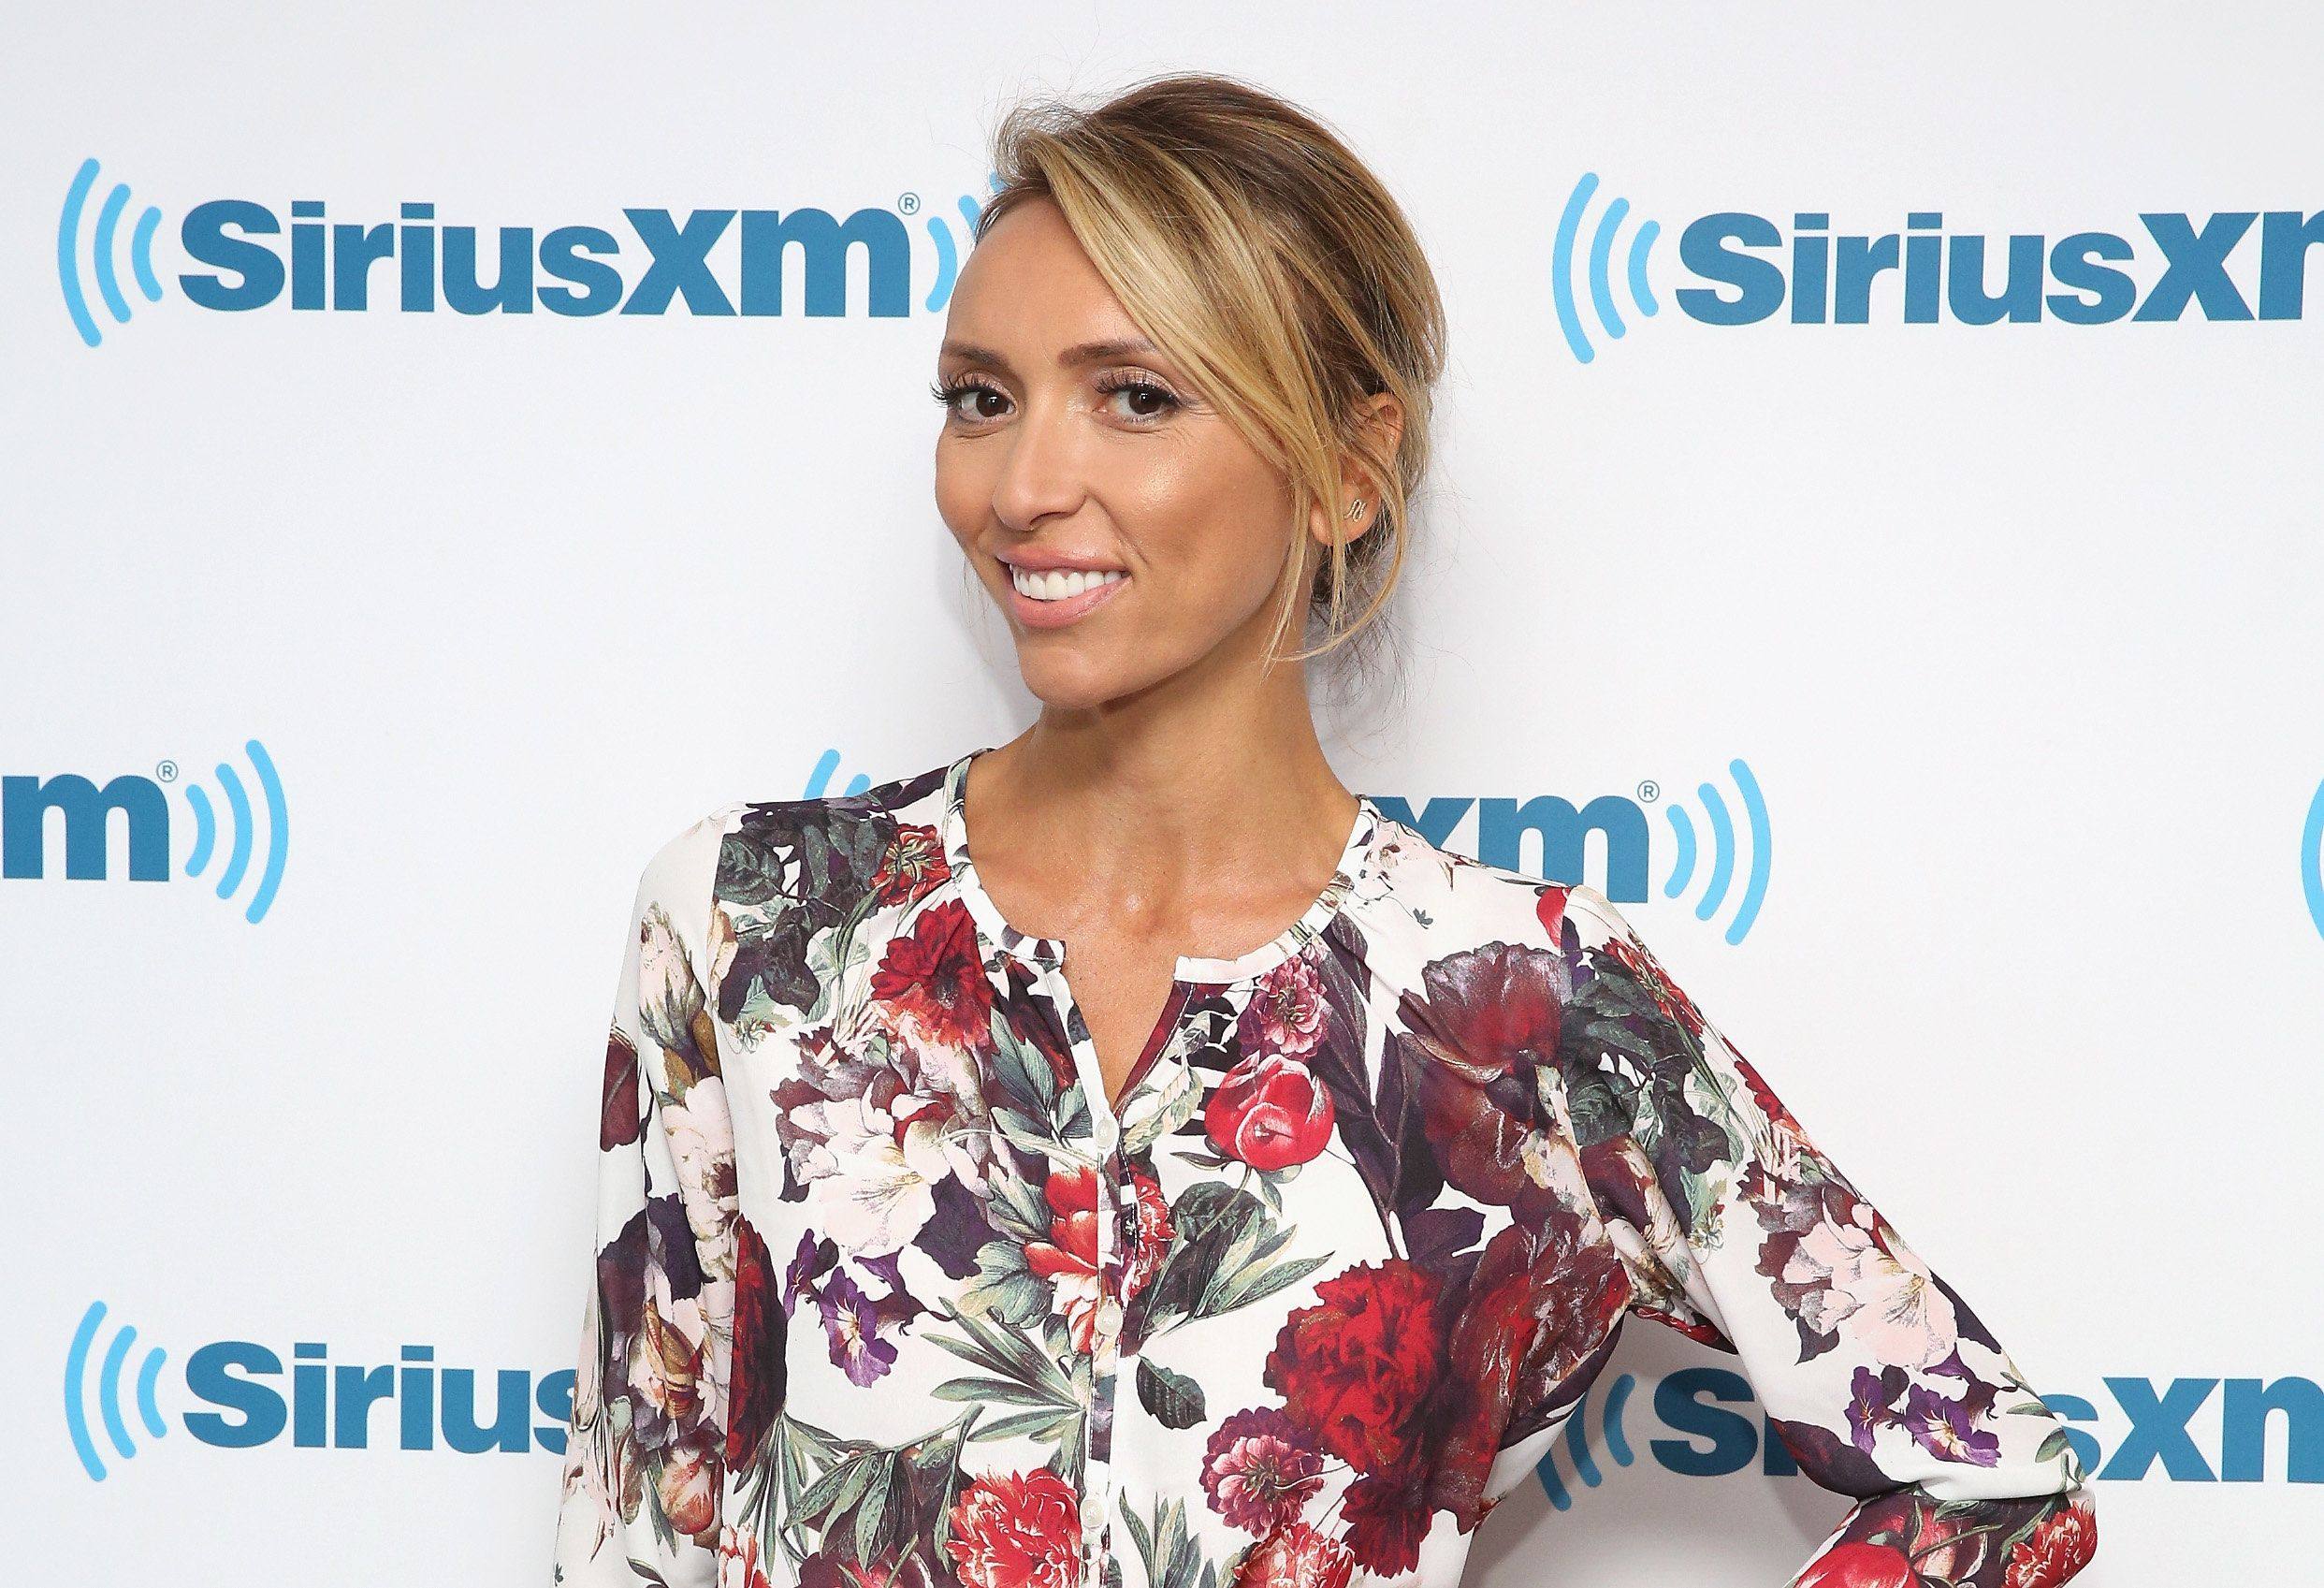 NEW YORK, NY - MAY 03:  Giuliana Rancic visits on May 03, 2016 in New York, New York.  (Photo by Robin Marchant/Getty Images)